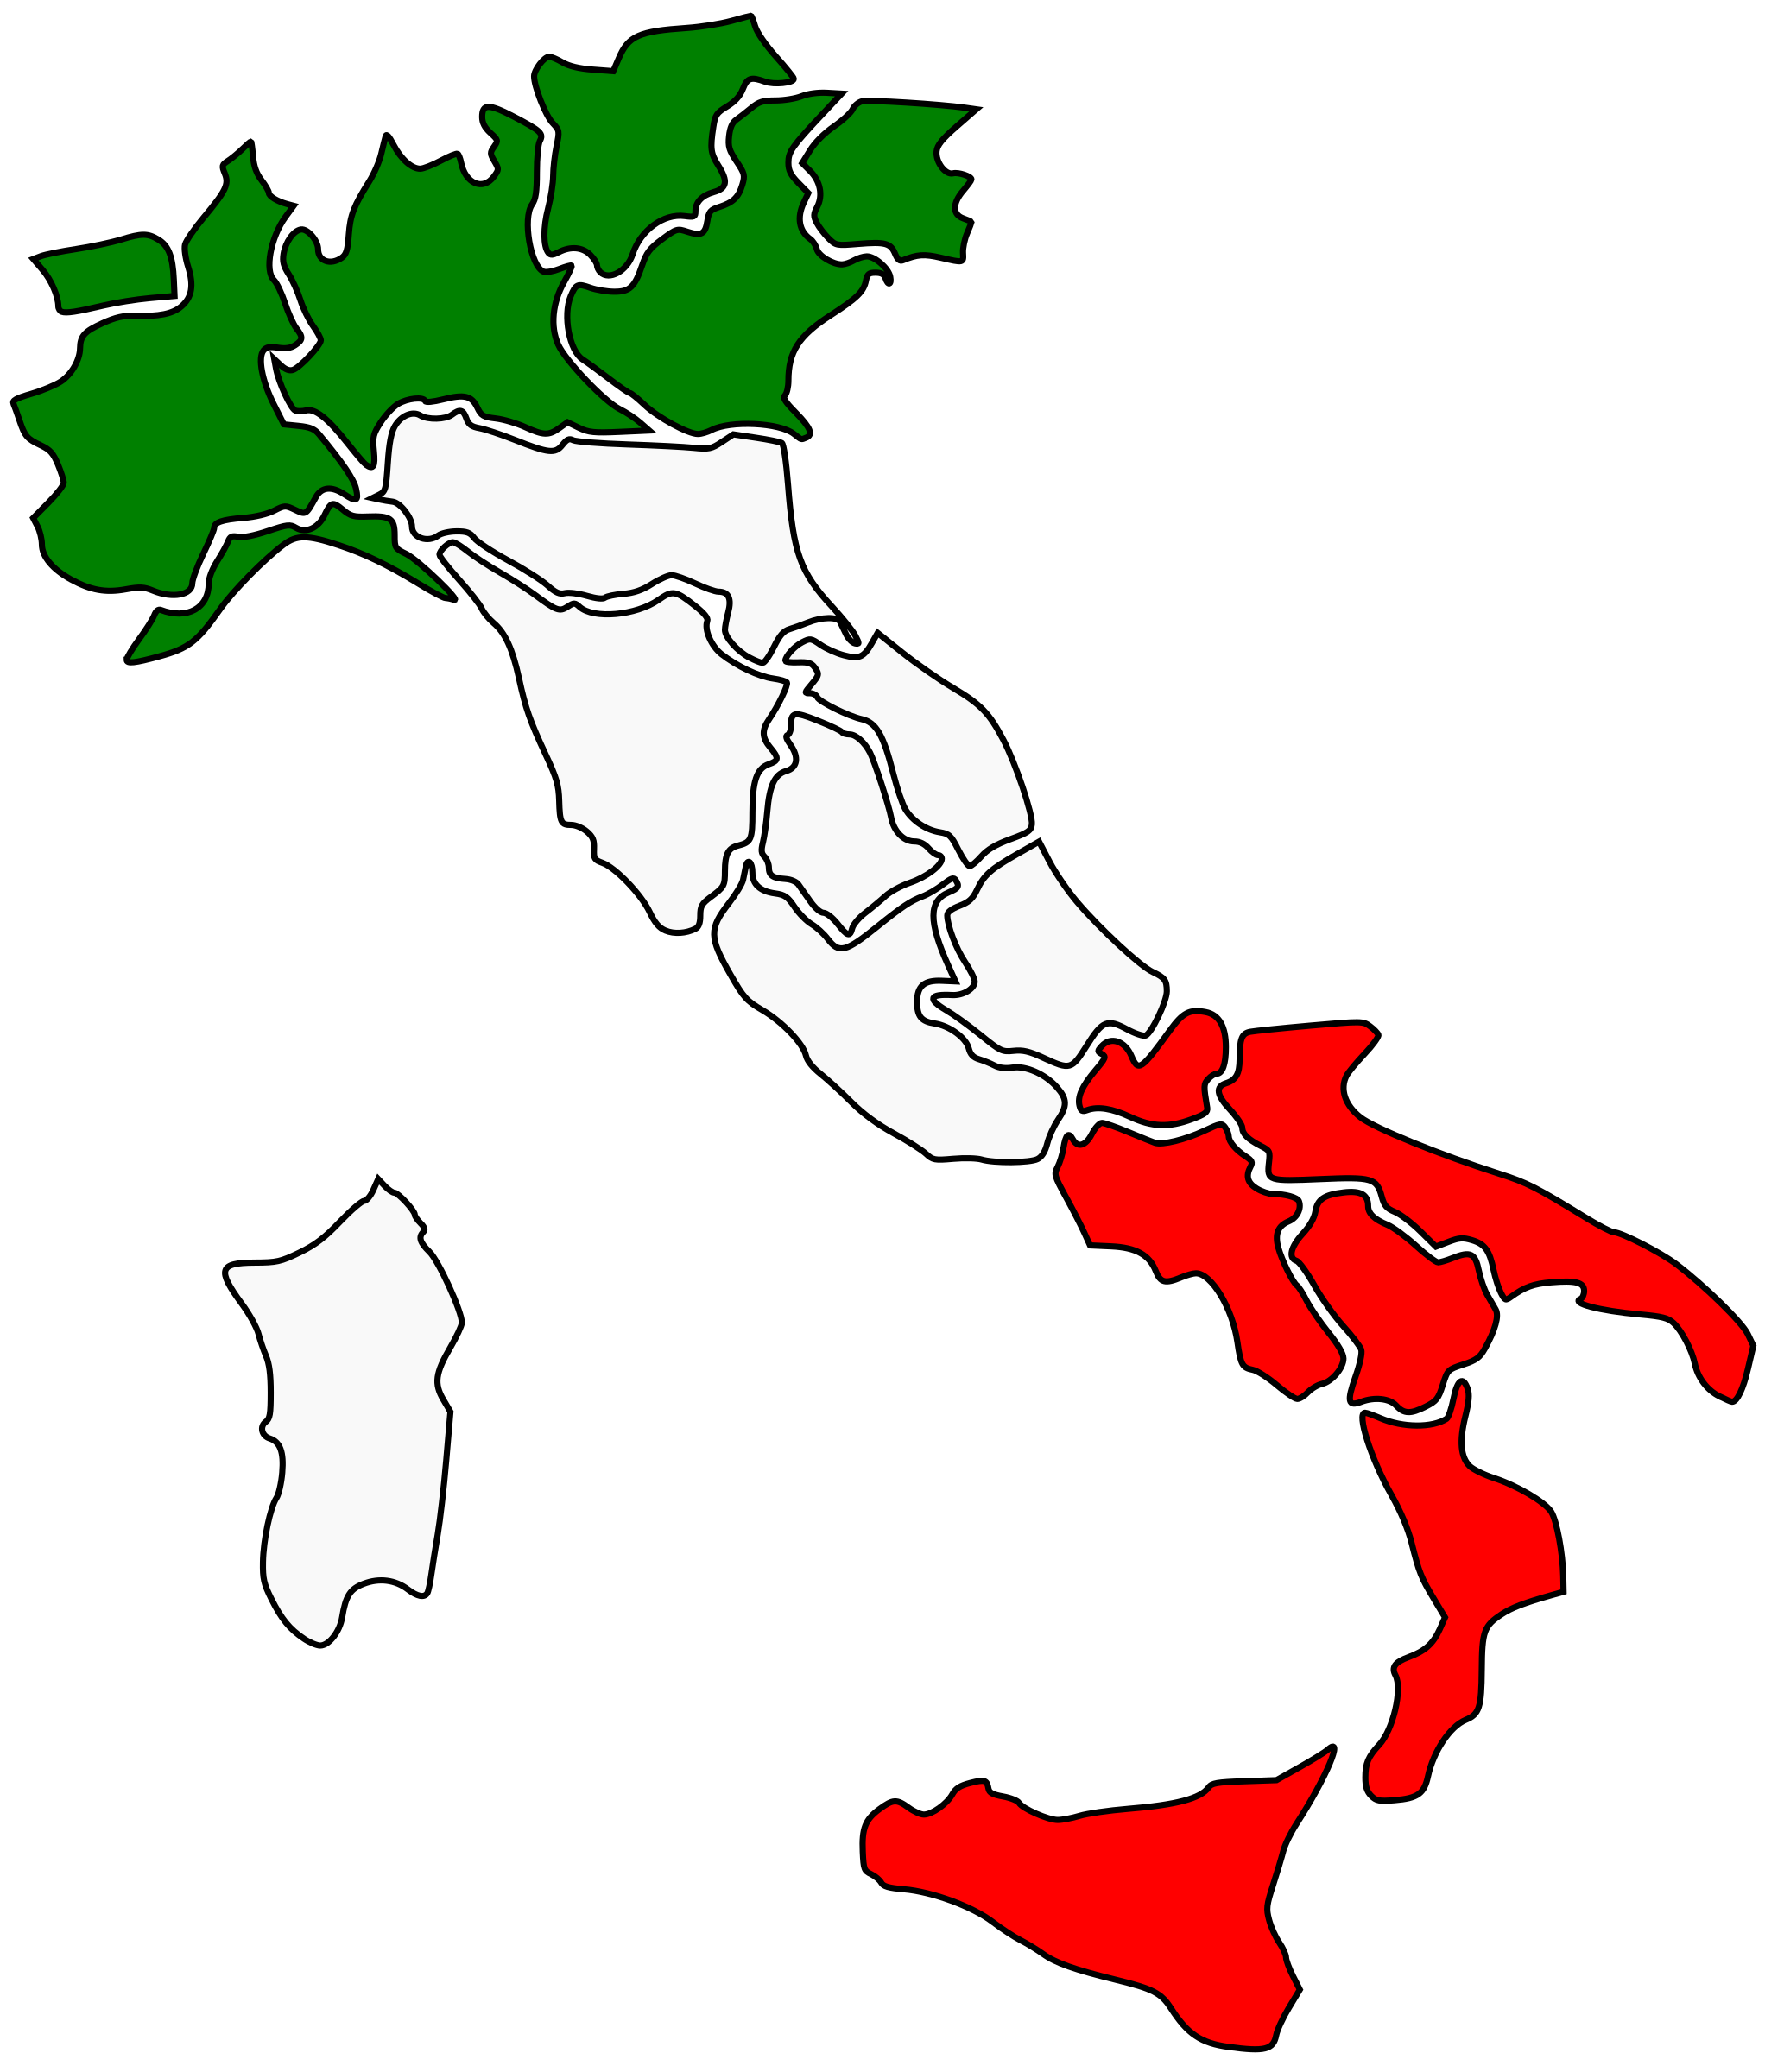 Italy Map by marcoqf73